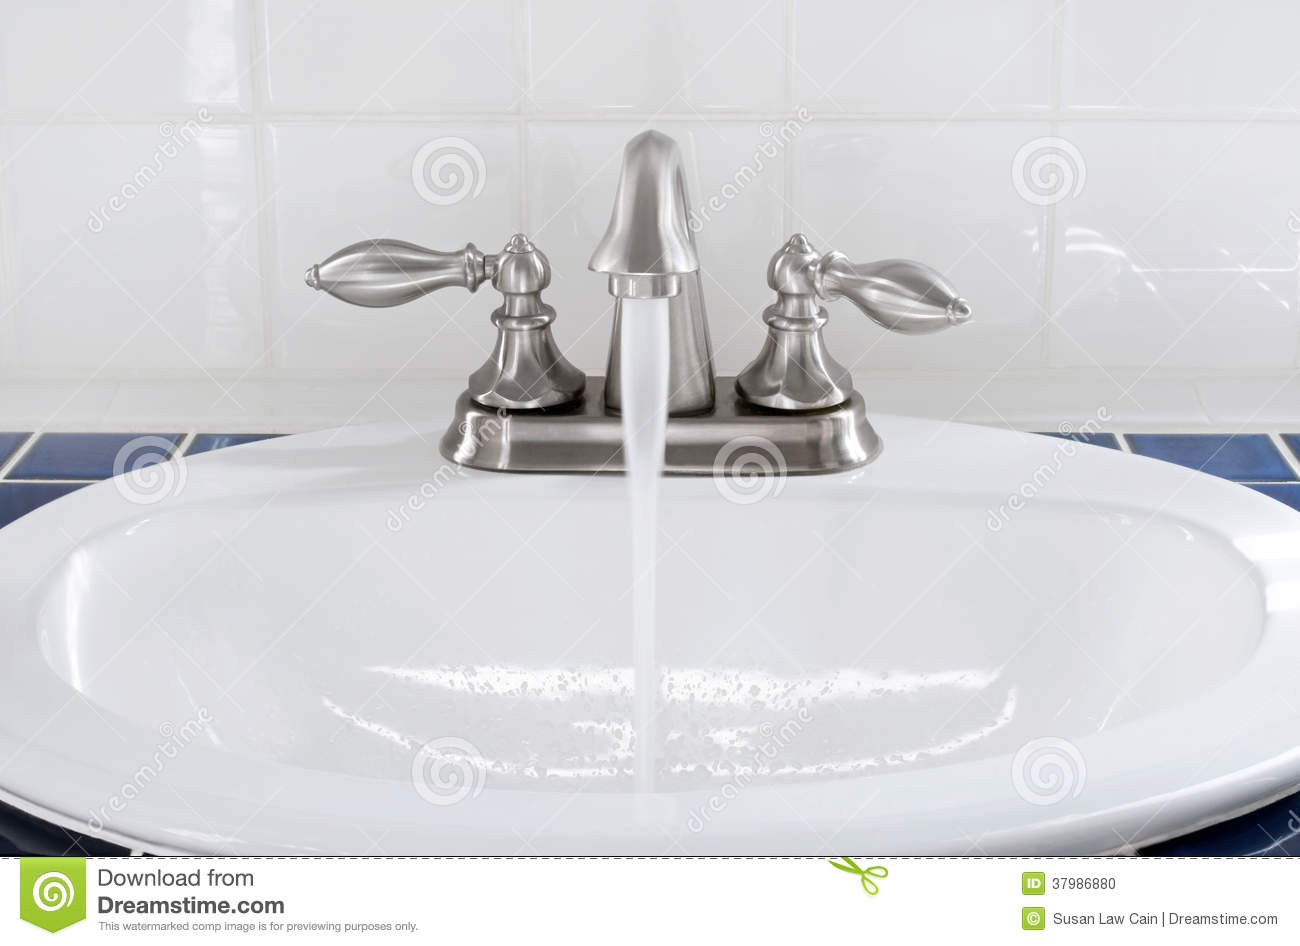 Sink With Running Water Stock Photo - Image: 37986880 Sink With Water